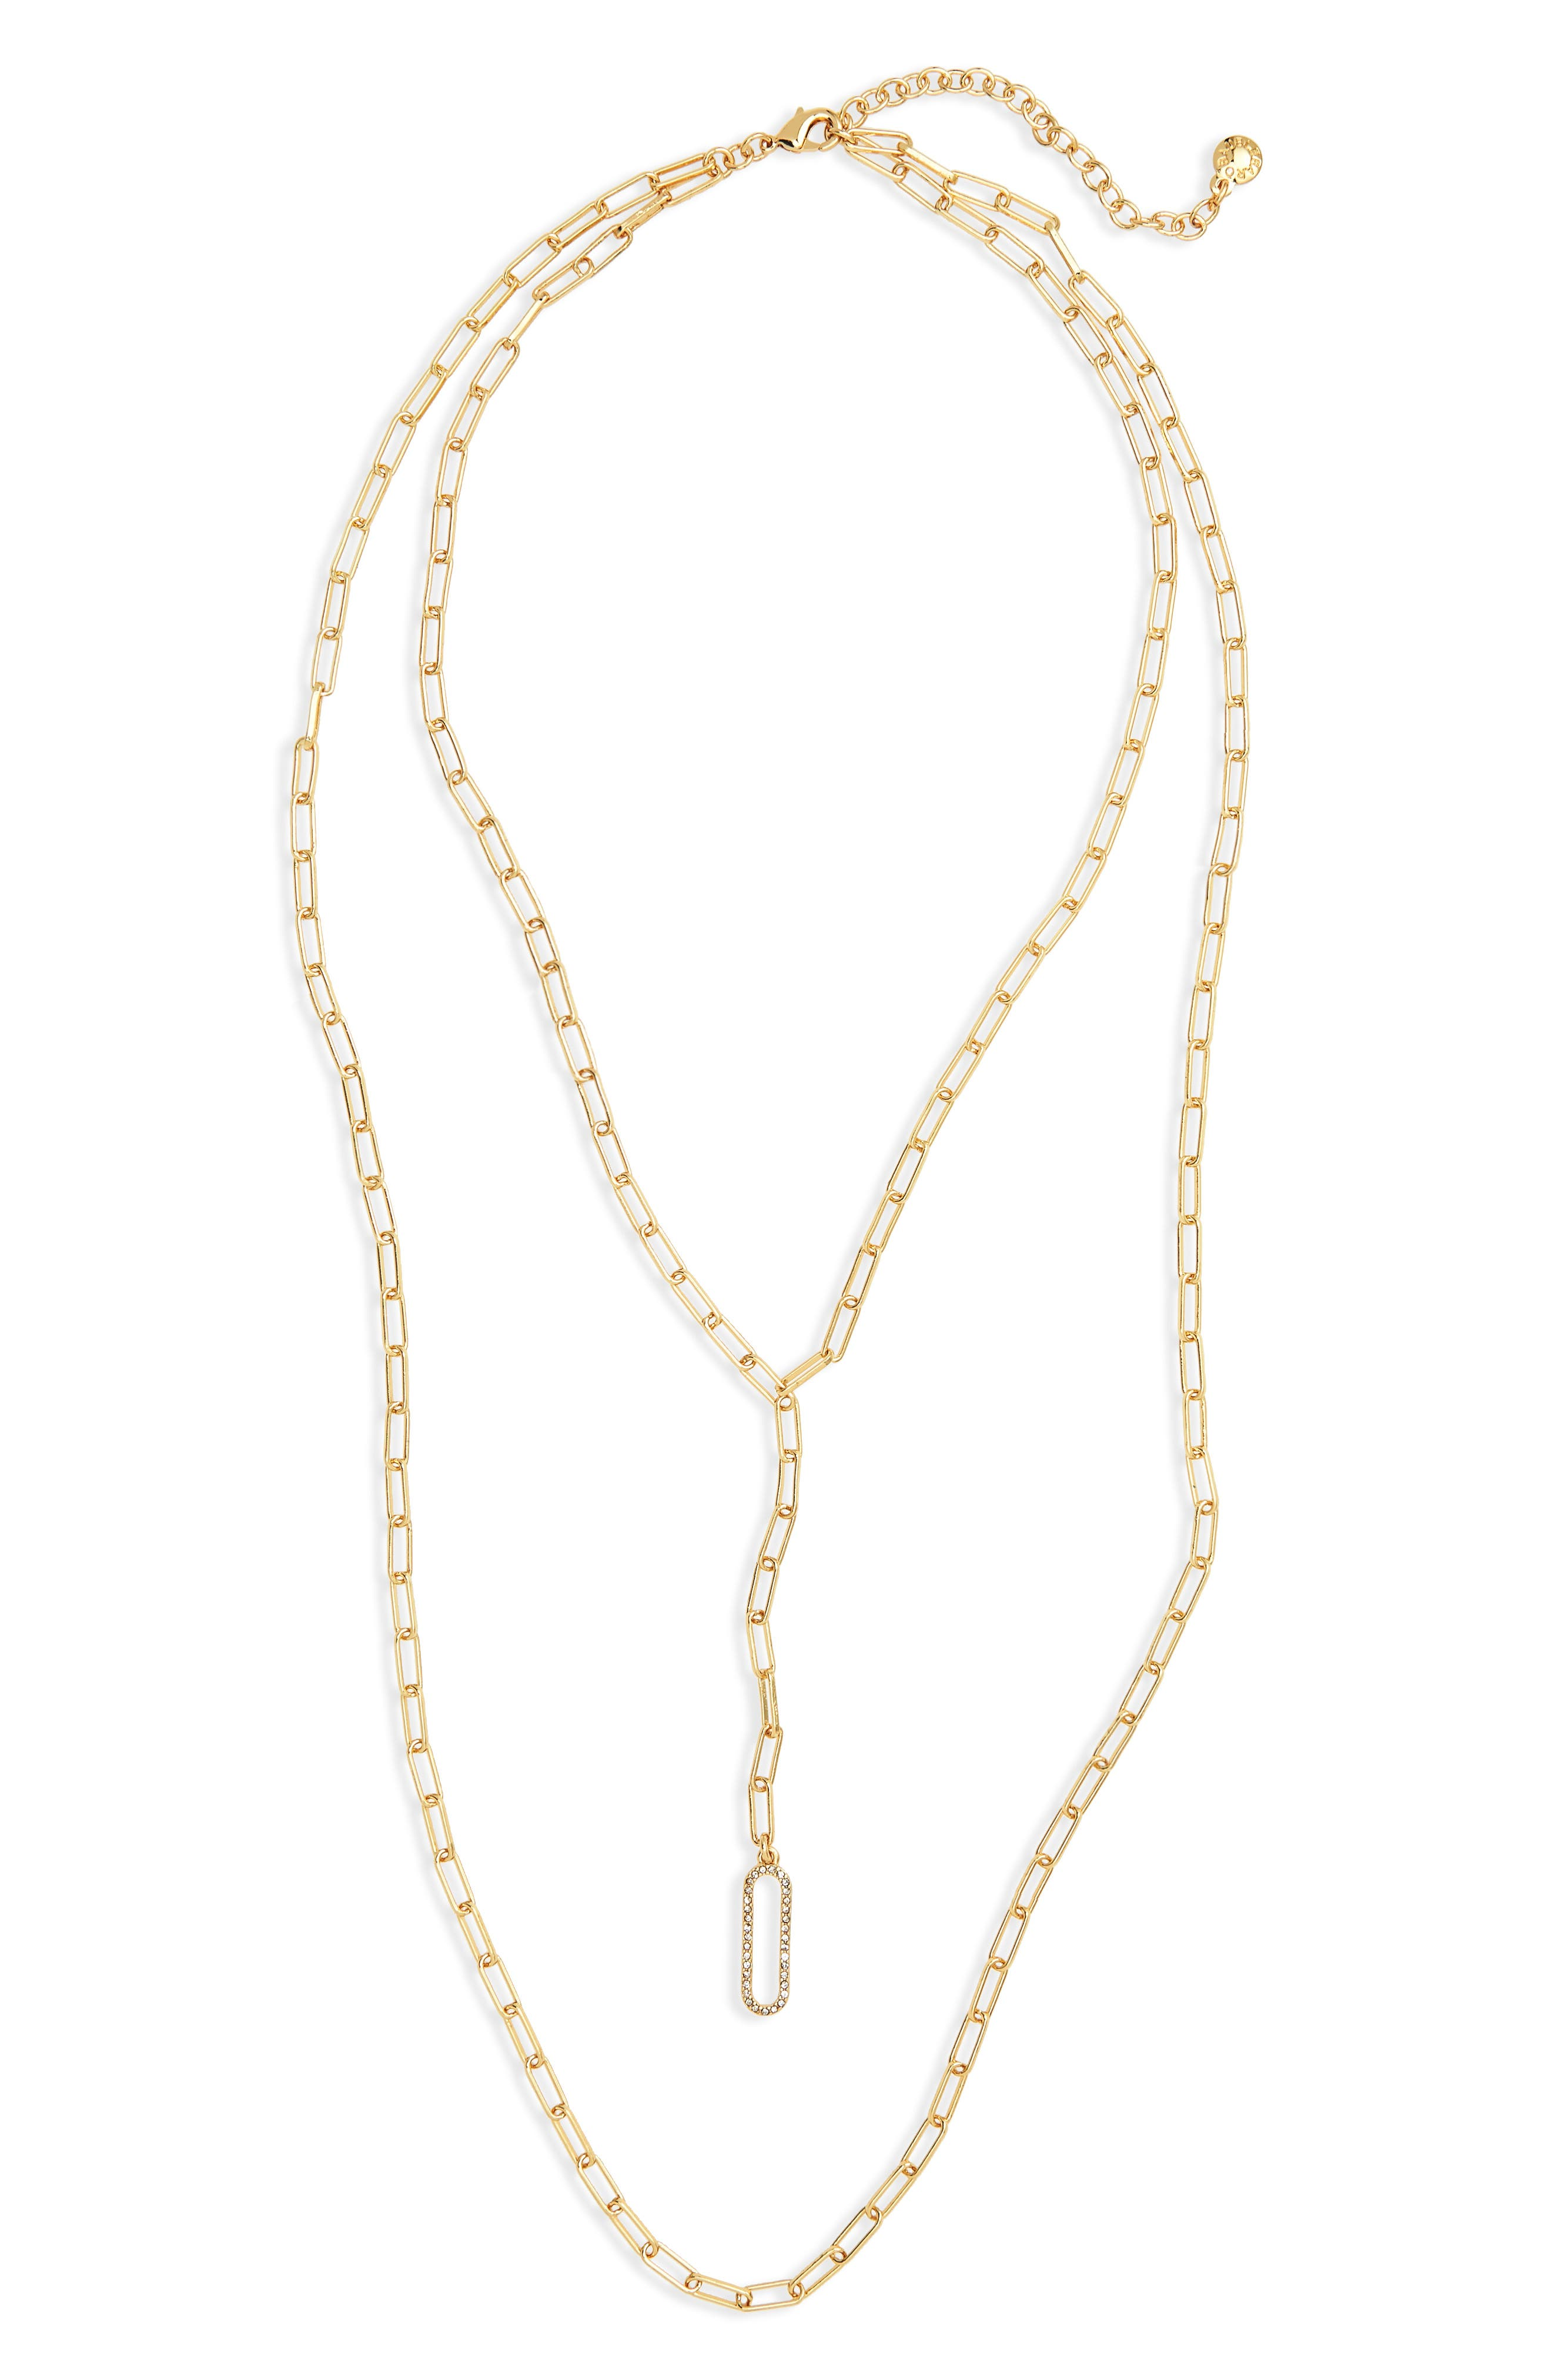 BAUBLEBAR,                             Layered Link Necklace,                             Main thumbnail 1, color,                             710